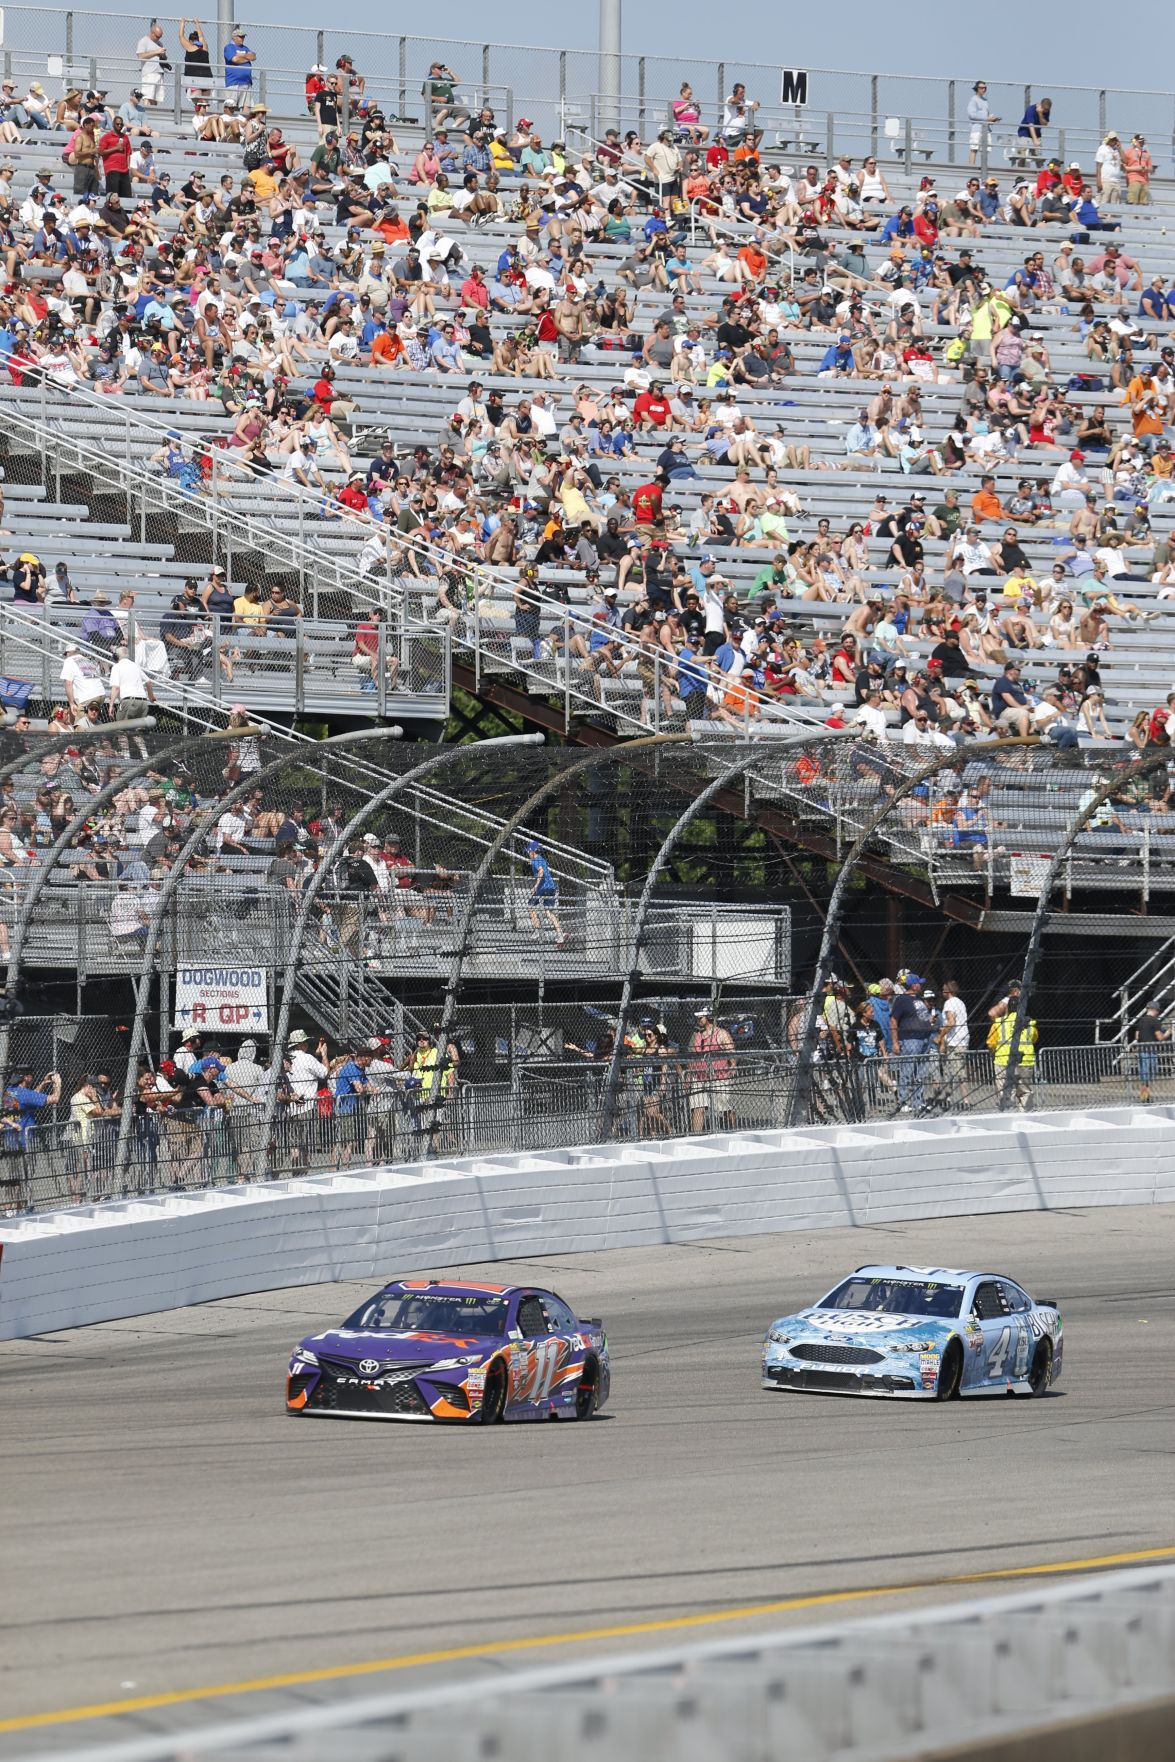 NASCAR race at Richmond that sold 112,000 tickets a decade ago is ...